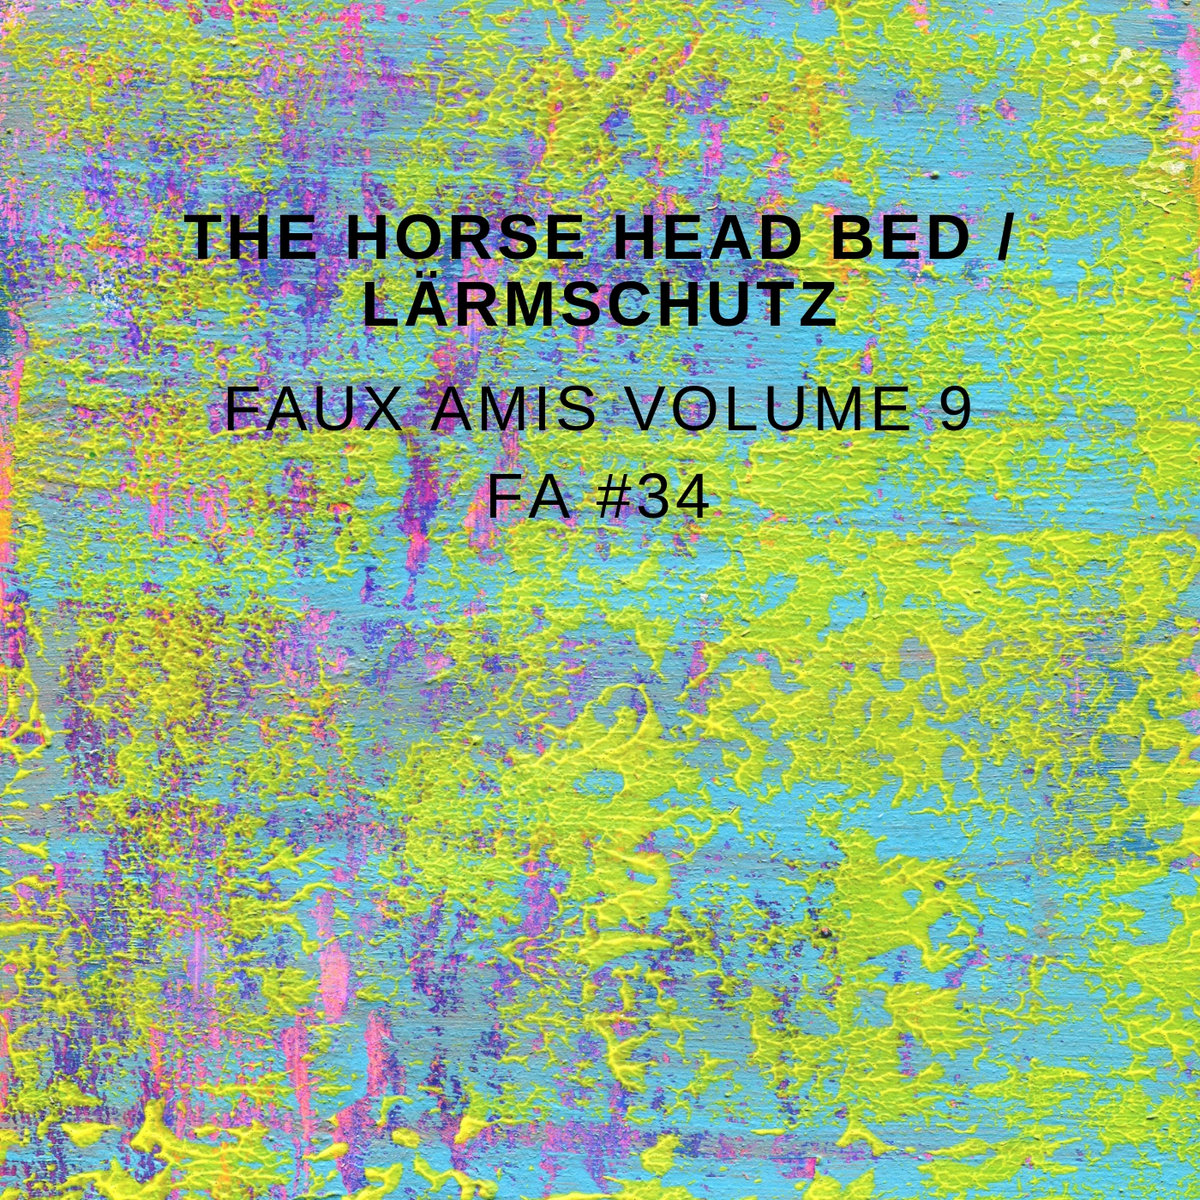 The Horse Head Bed and Lärmschutz - Faux Amis vol. 9